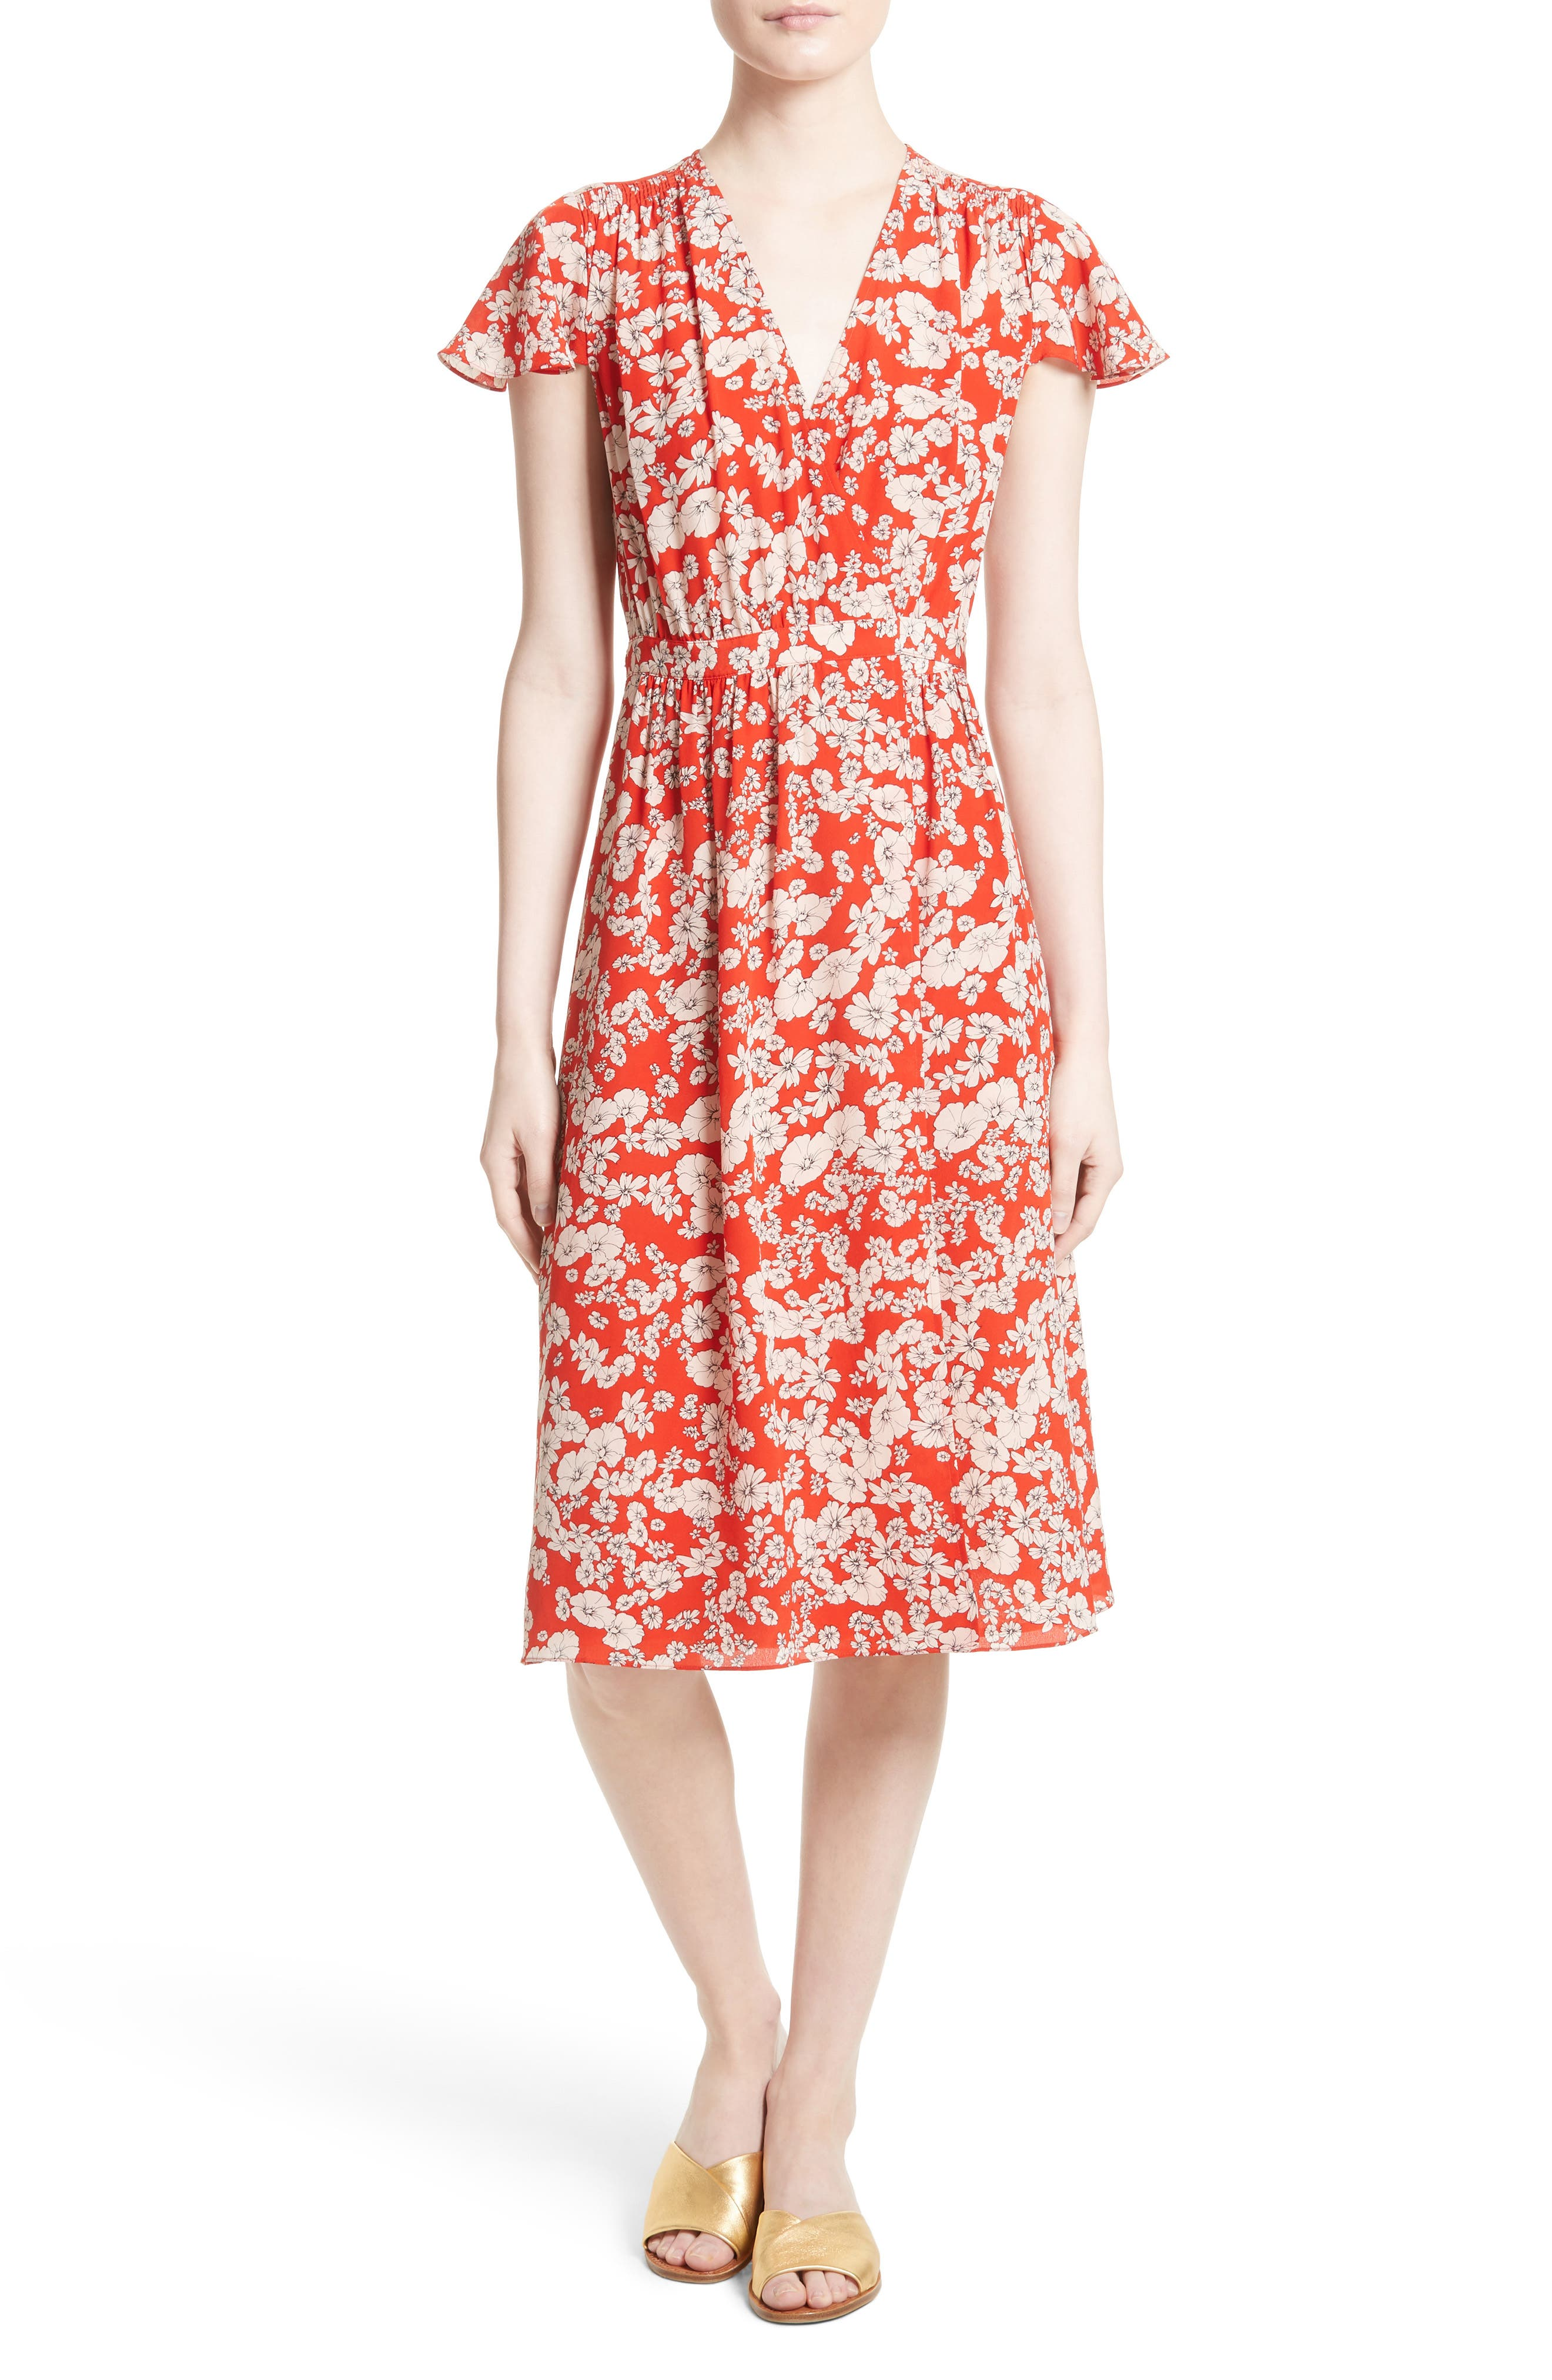 Alternate Image 1 Selected - Rebecca Taylor Cherry Blossom Silk Wrap Dress